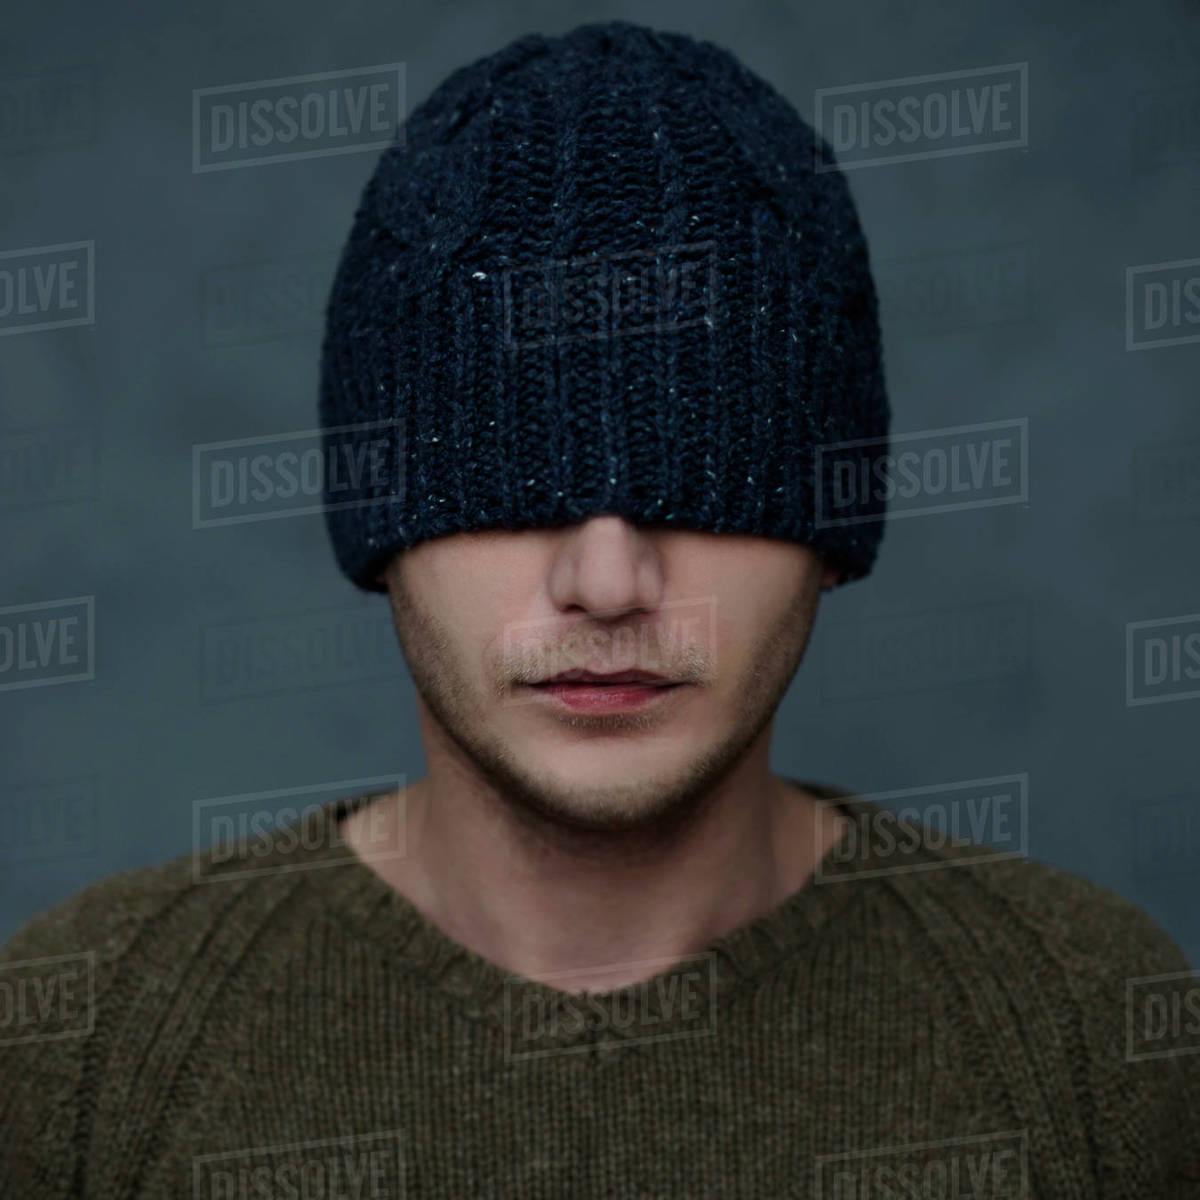 Caucasian man wearing beanie hat over eyes - Stock Photo - Dissolve d2e1126c345